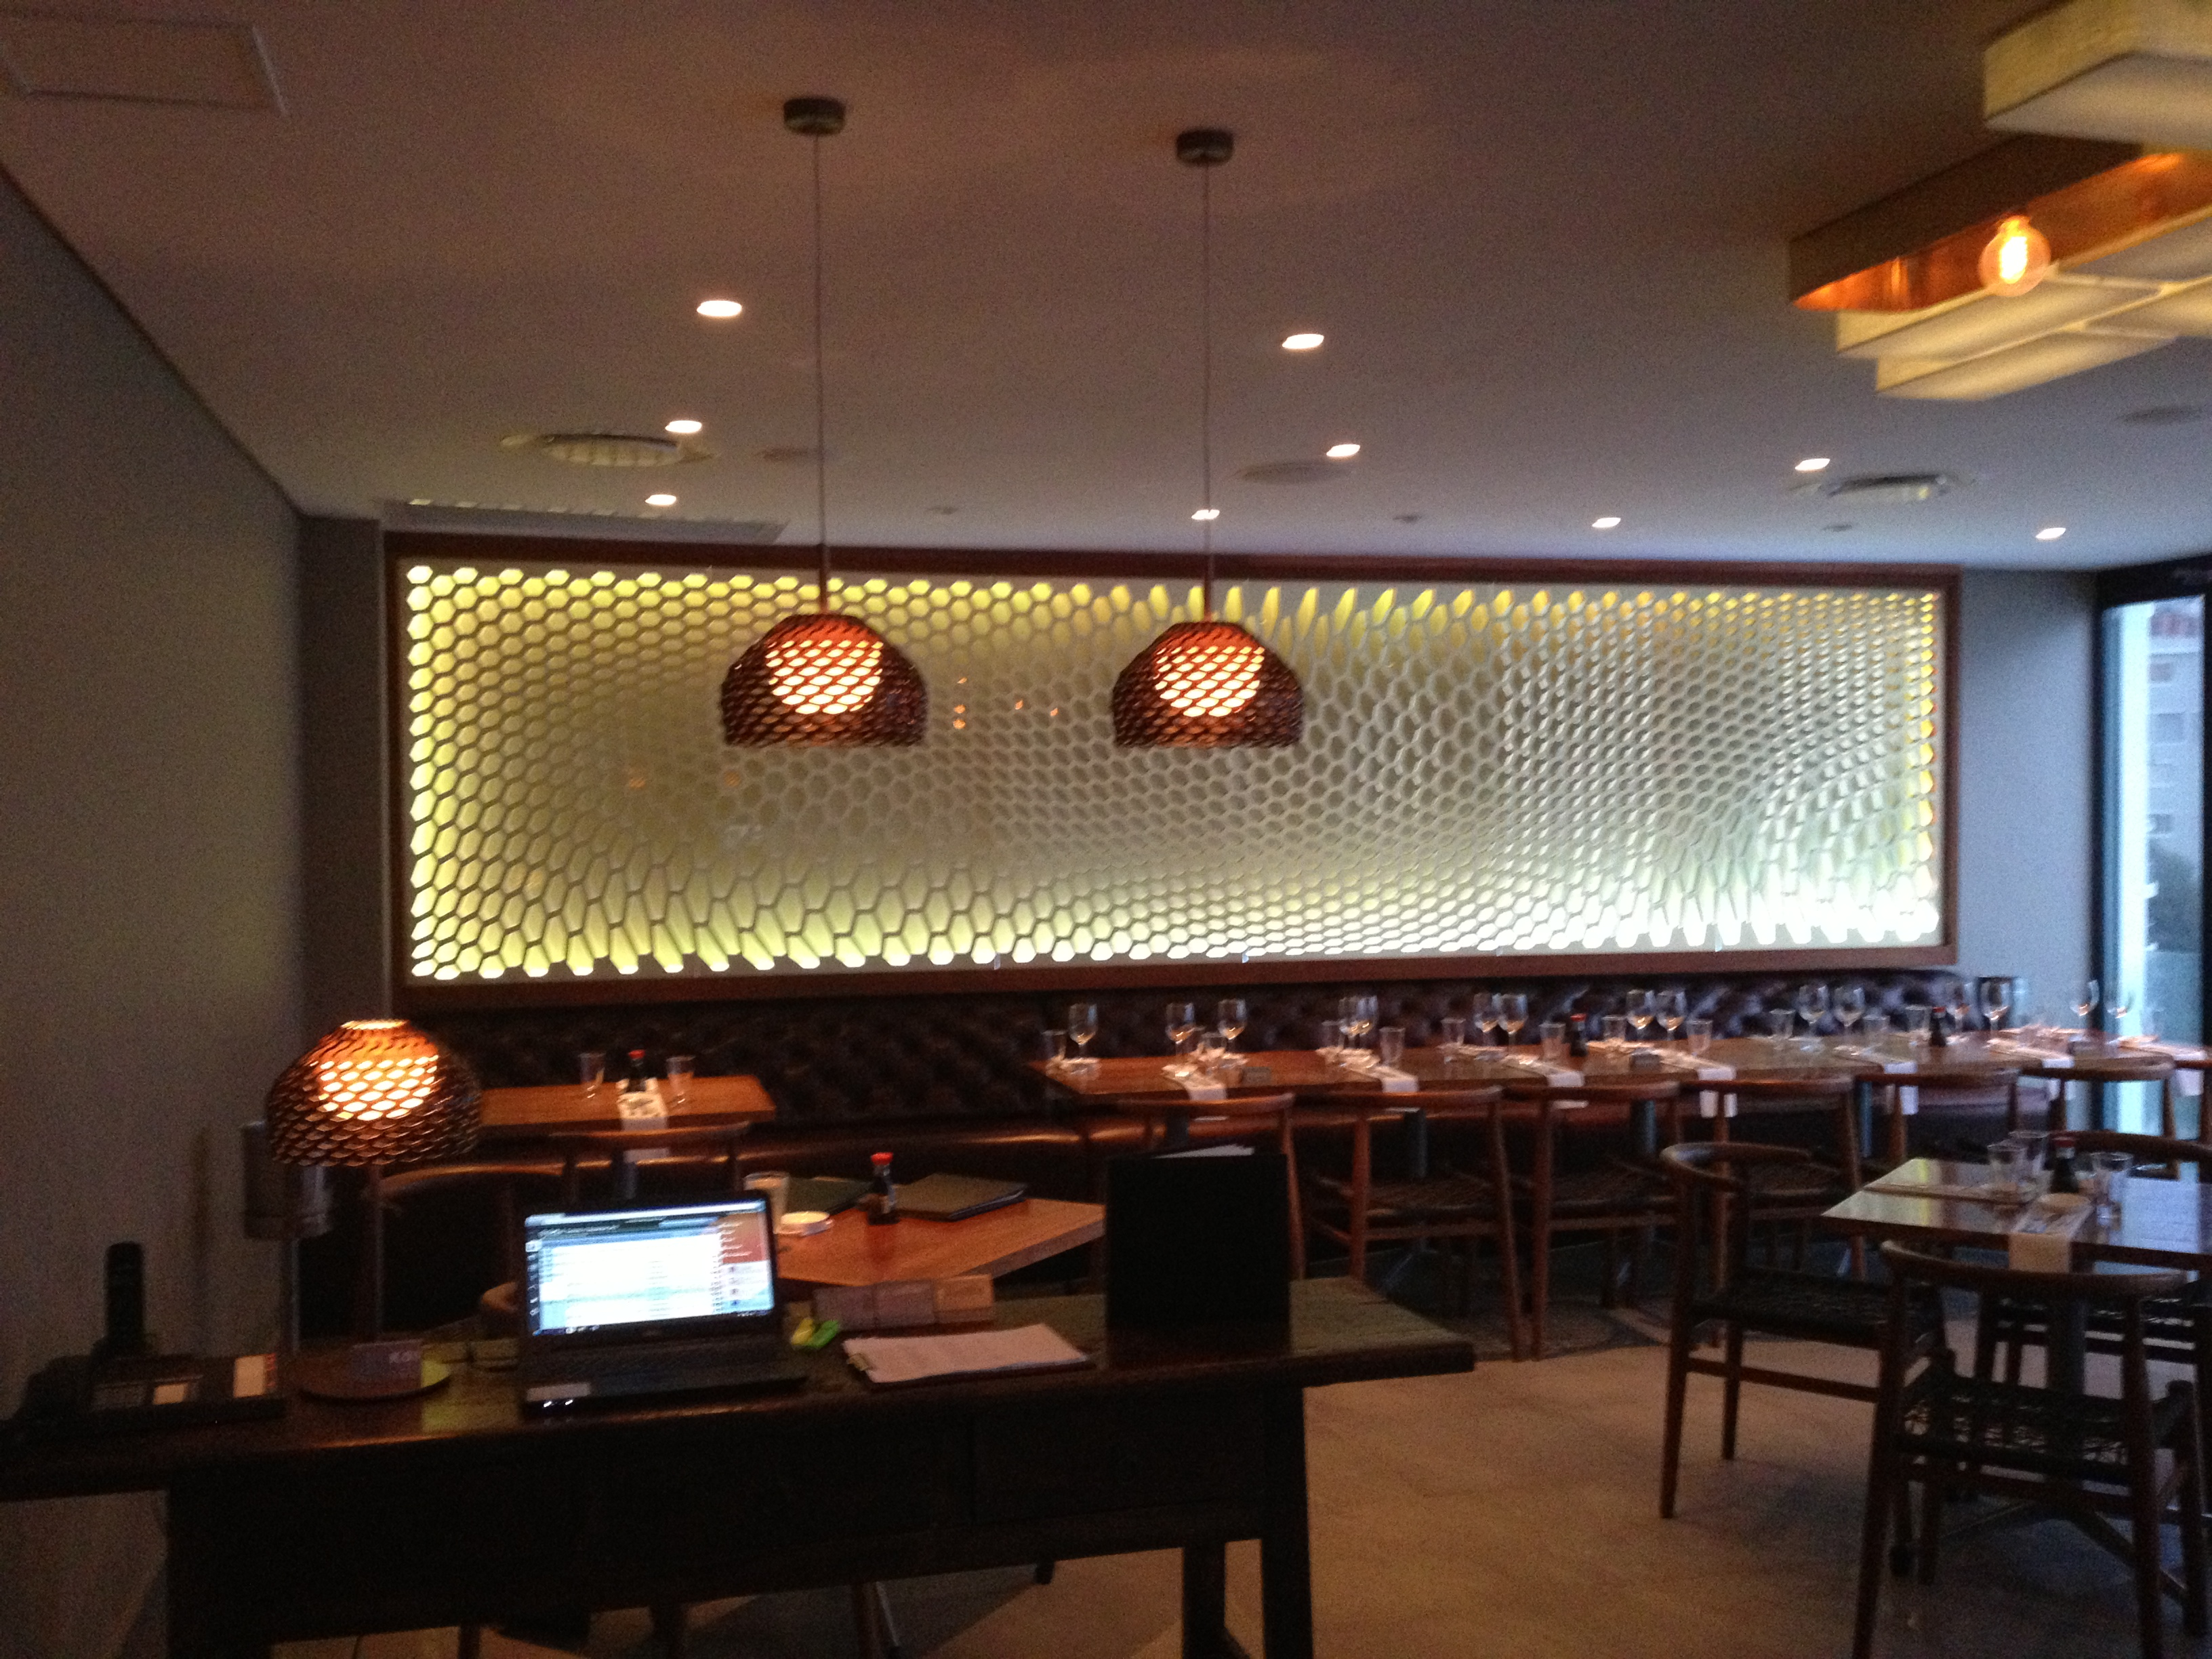 Restaurants Feature Wall Designs: Restaurant Review: There Are No Koi At KOI Bantry Bay